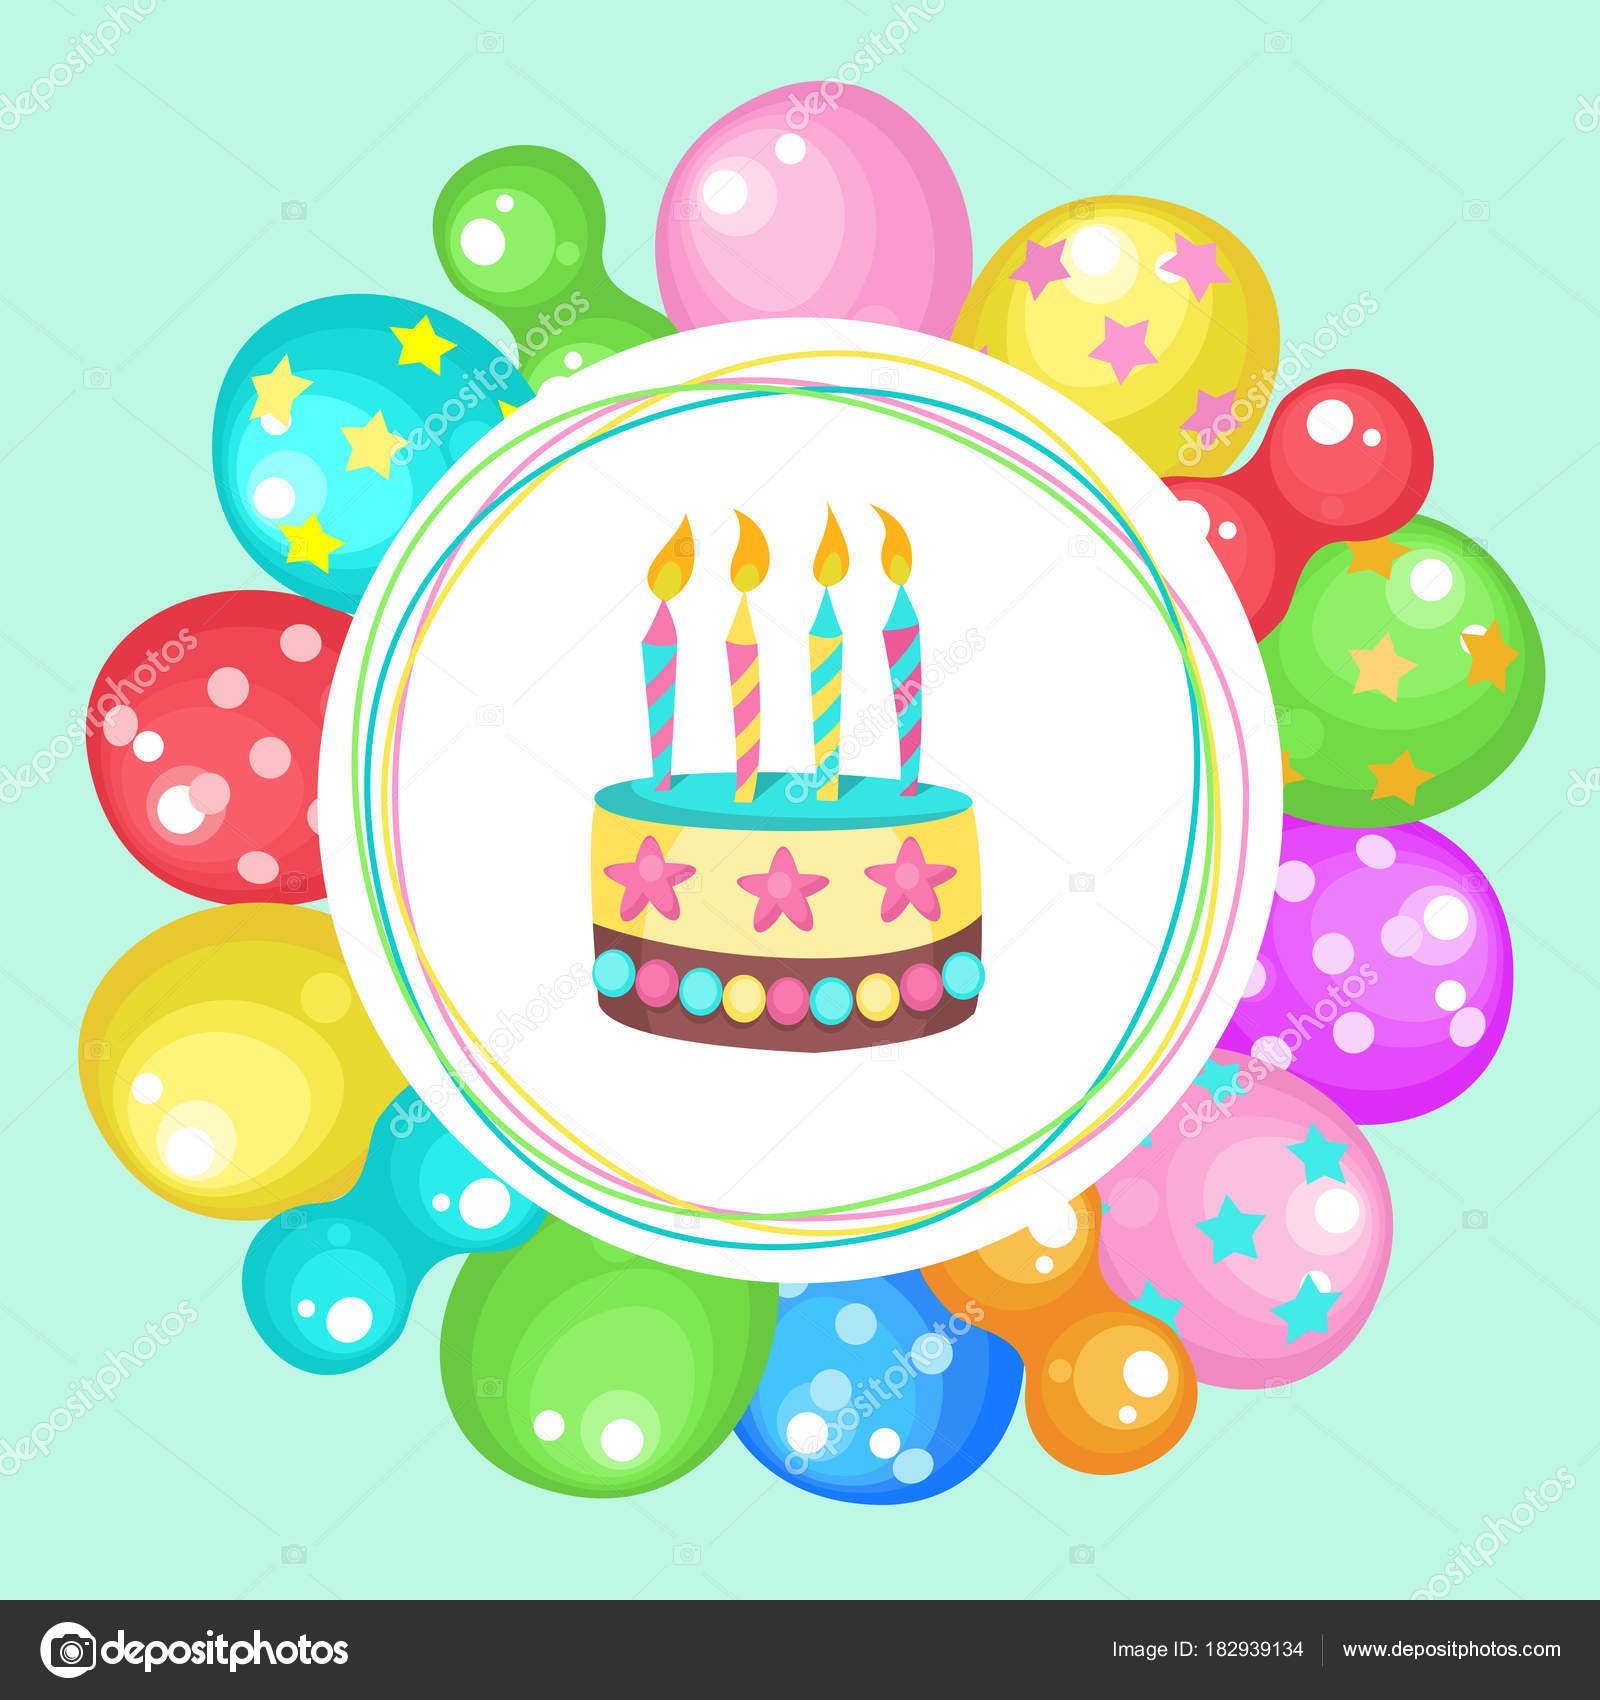 Happy Birthday Greeting Card Bright Multicolored Balloons Cake With Candles Vector Illustration By Katedemianov